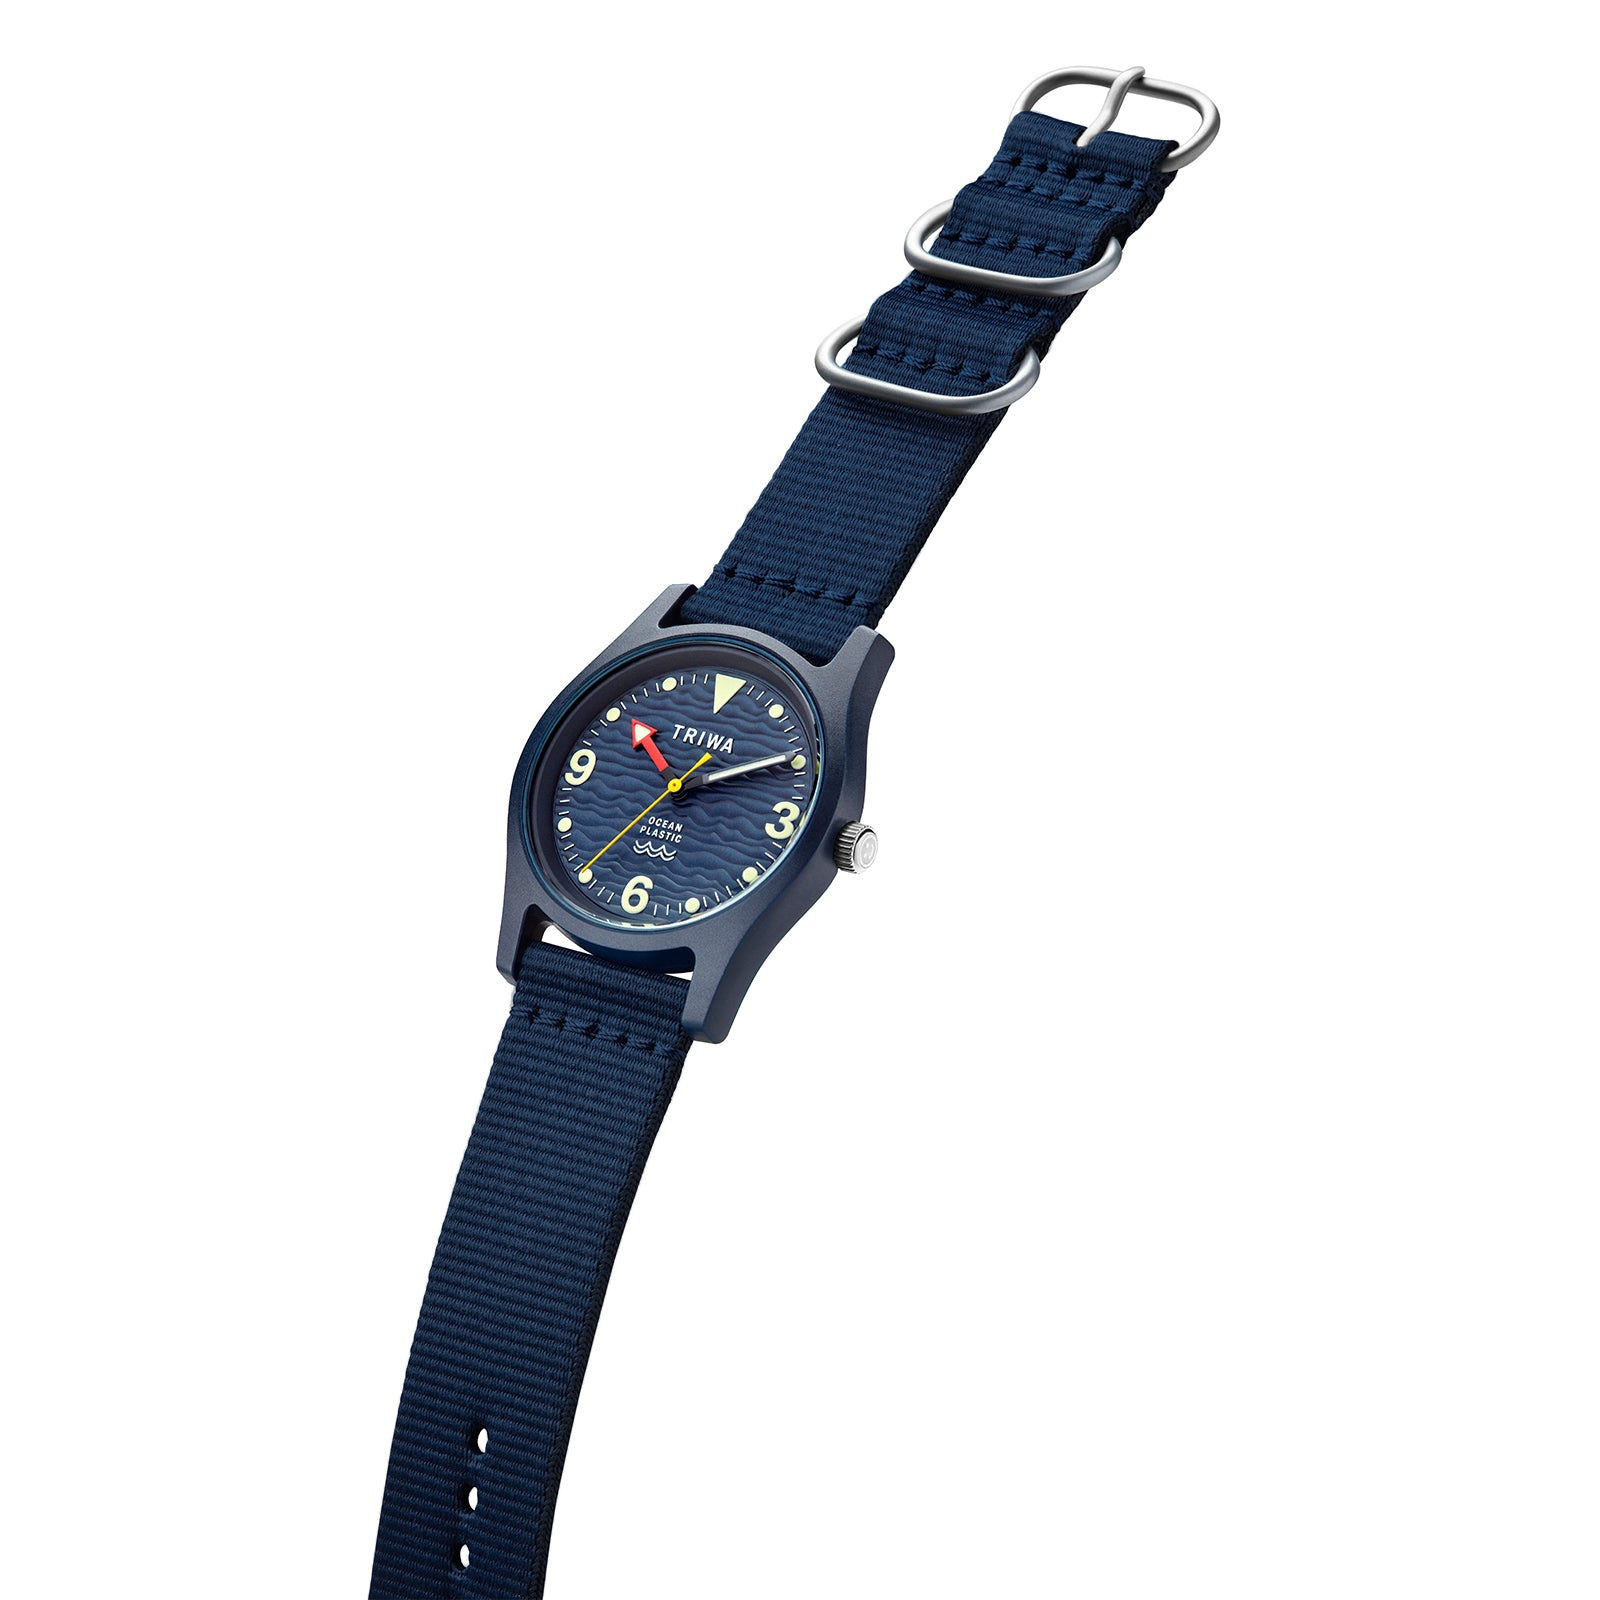 Triwa 'Time for Oceans' Wrist Watch - Recycled Ocean Plastic - Deep Blue